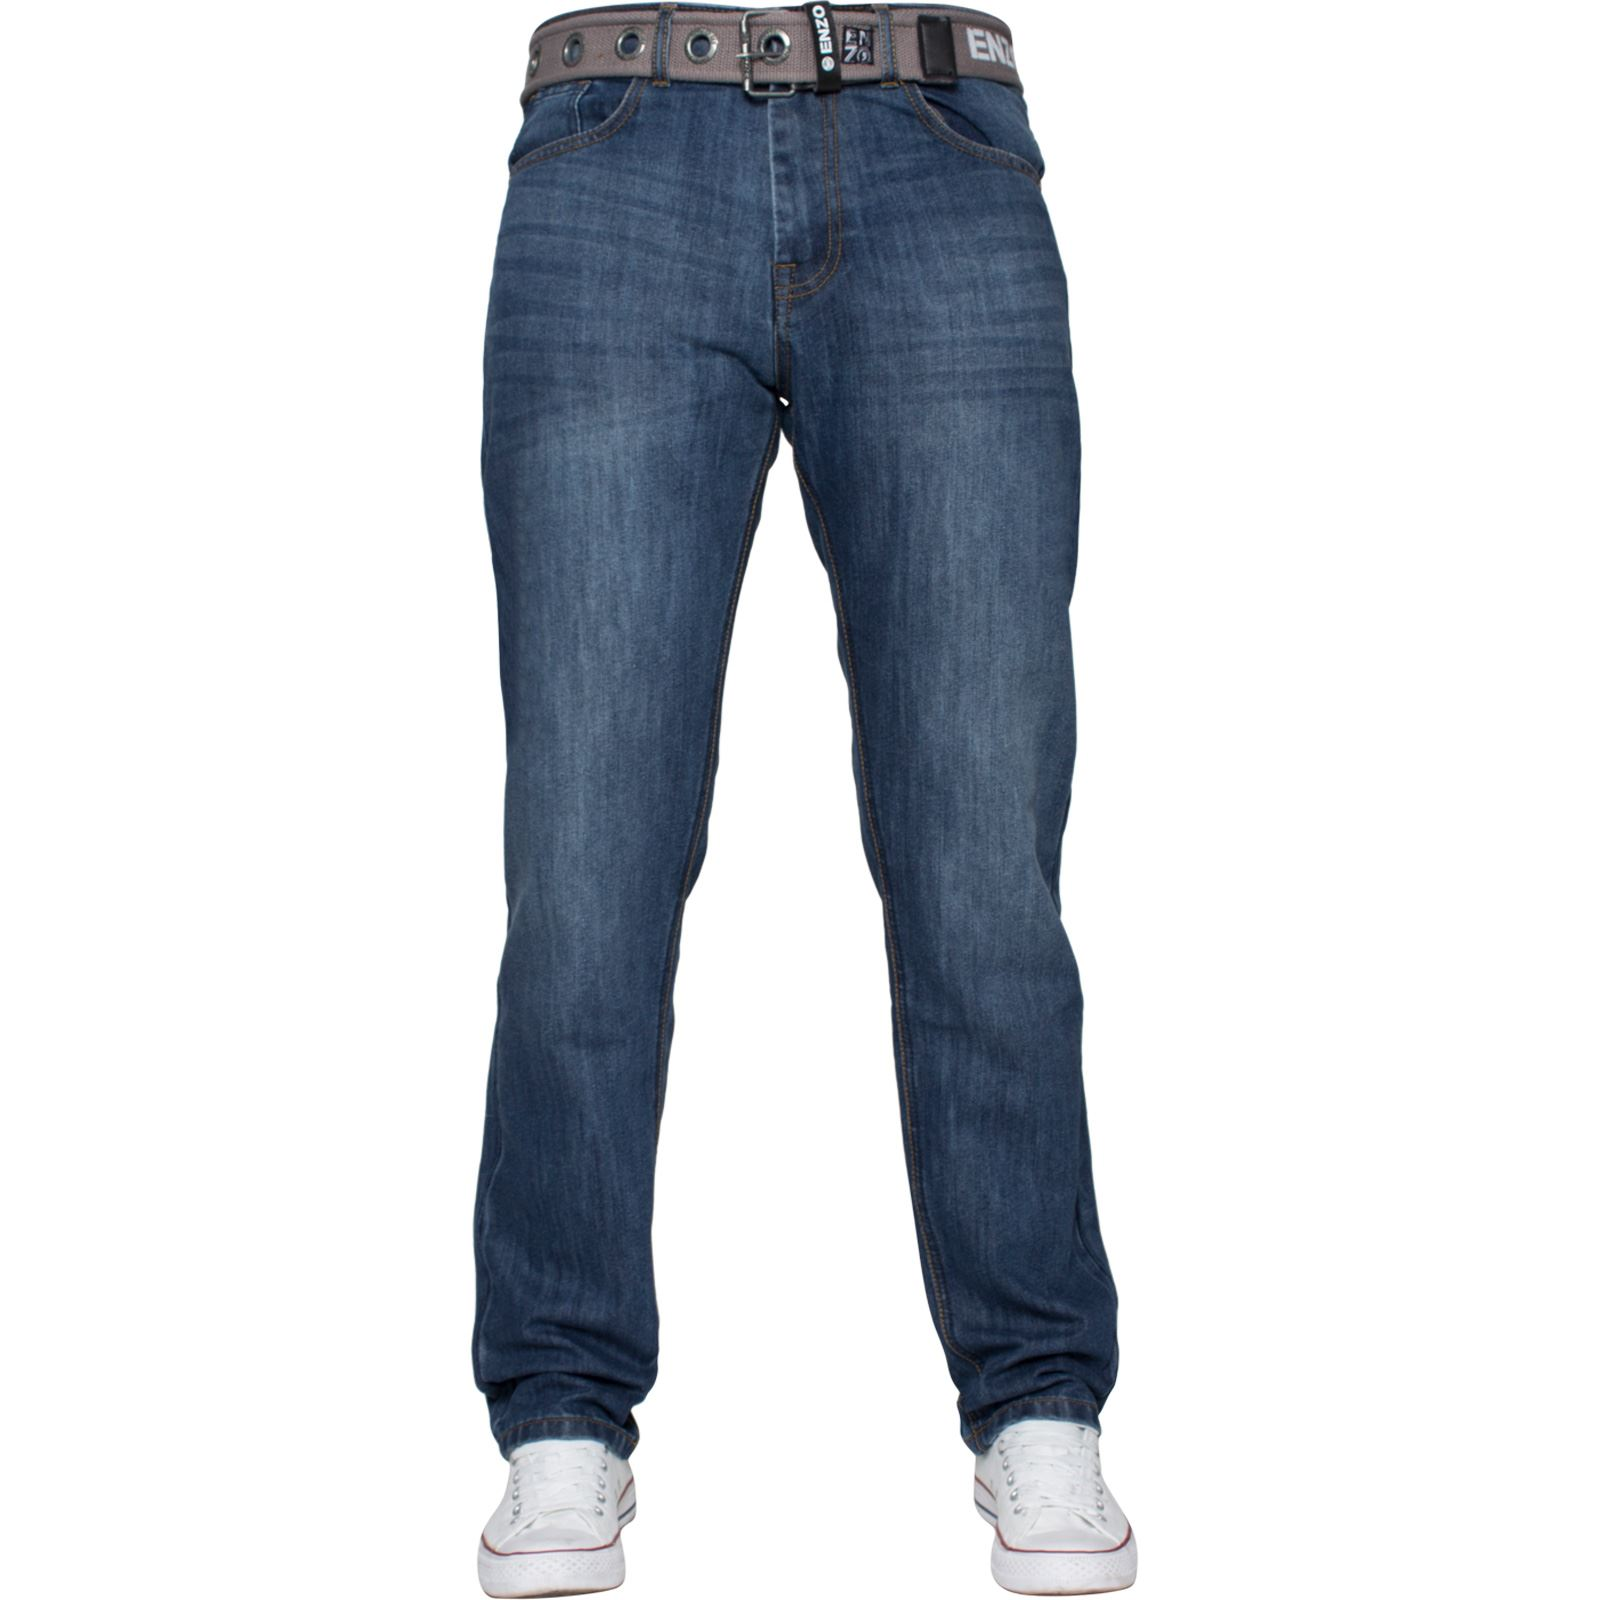 Enzo-Mens-Designer-Jeans-Regular-Fit-Denim-Pants-Big-Tall-All-Waist-Sizes thumbnail 9